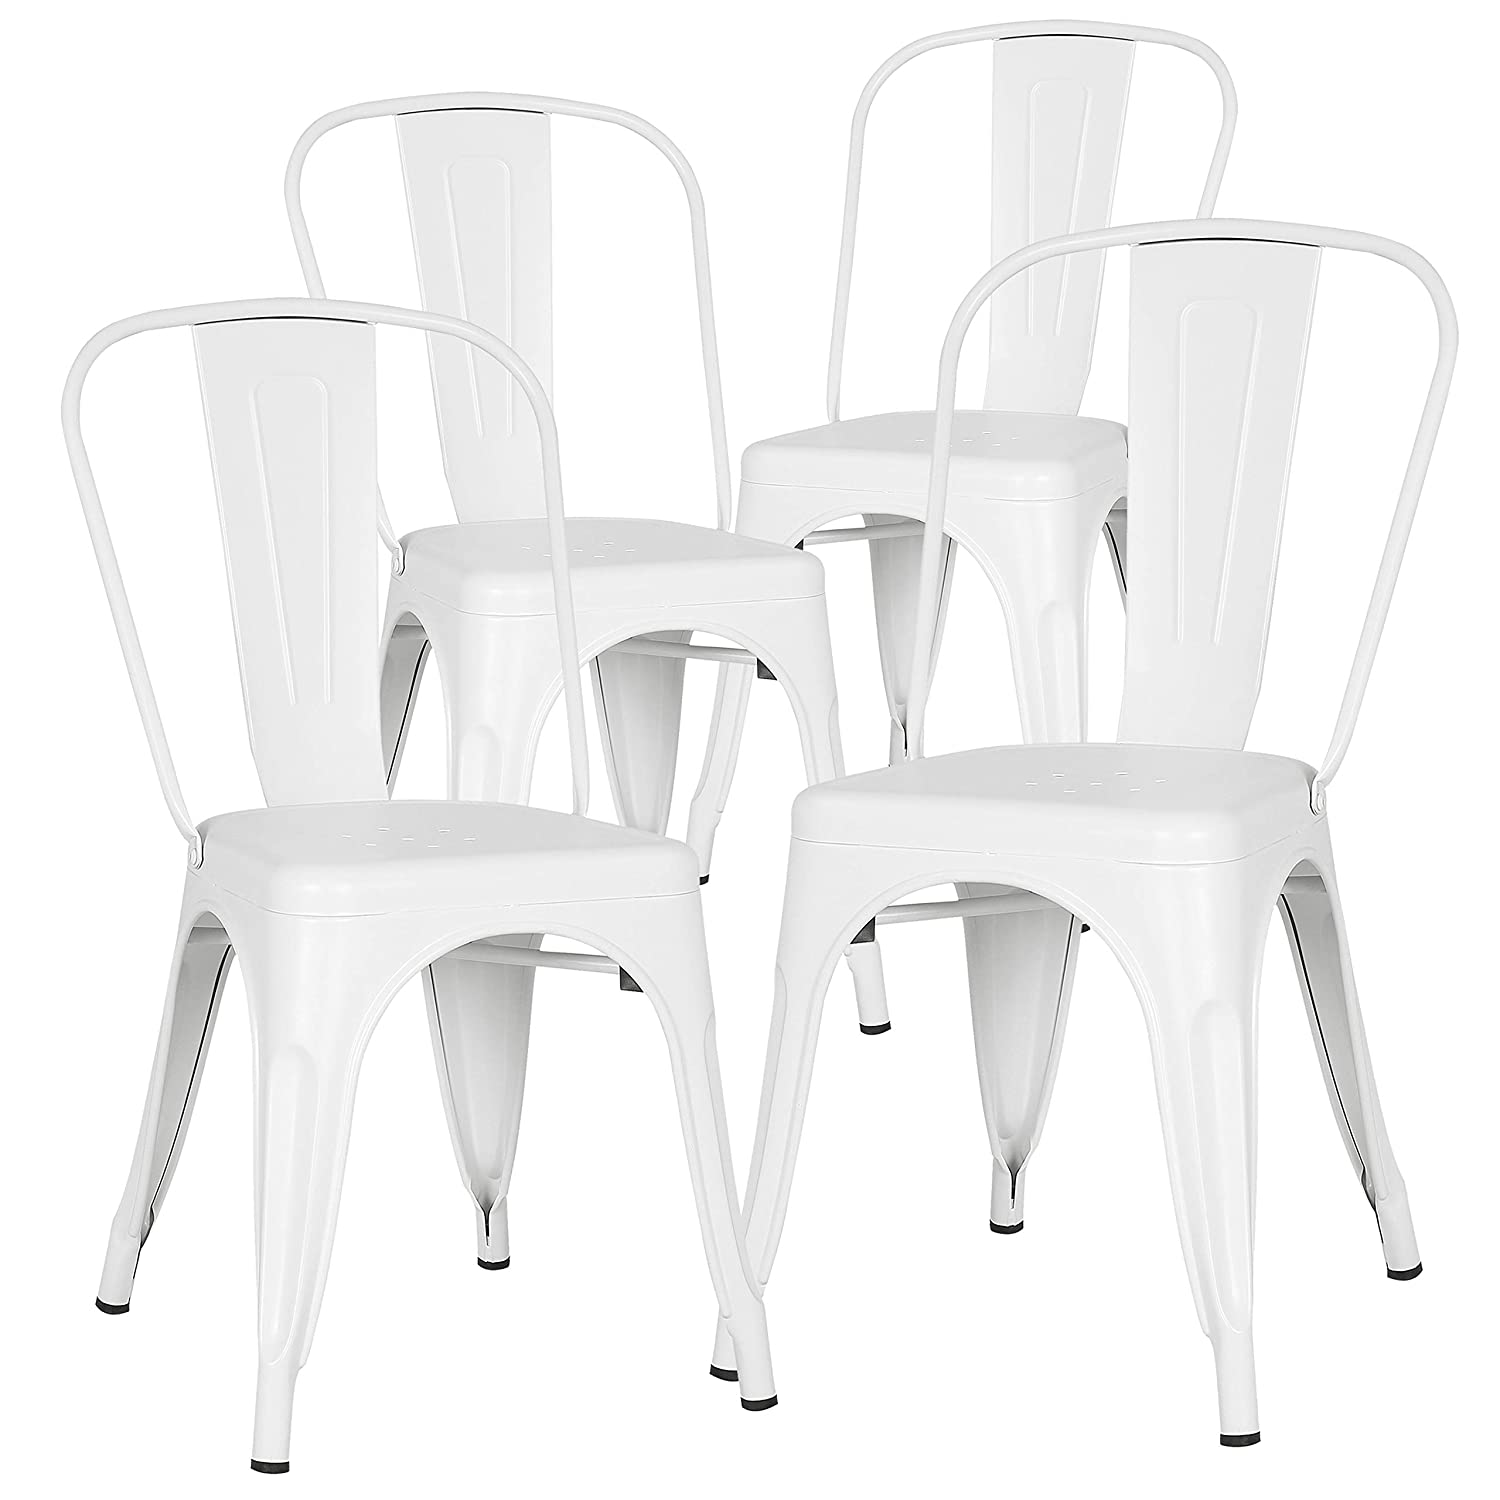 White Tolix style French industrial metal farmhouse dining chairs.